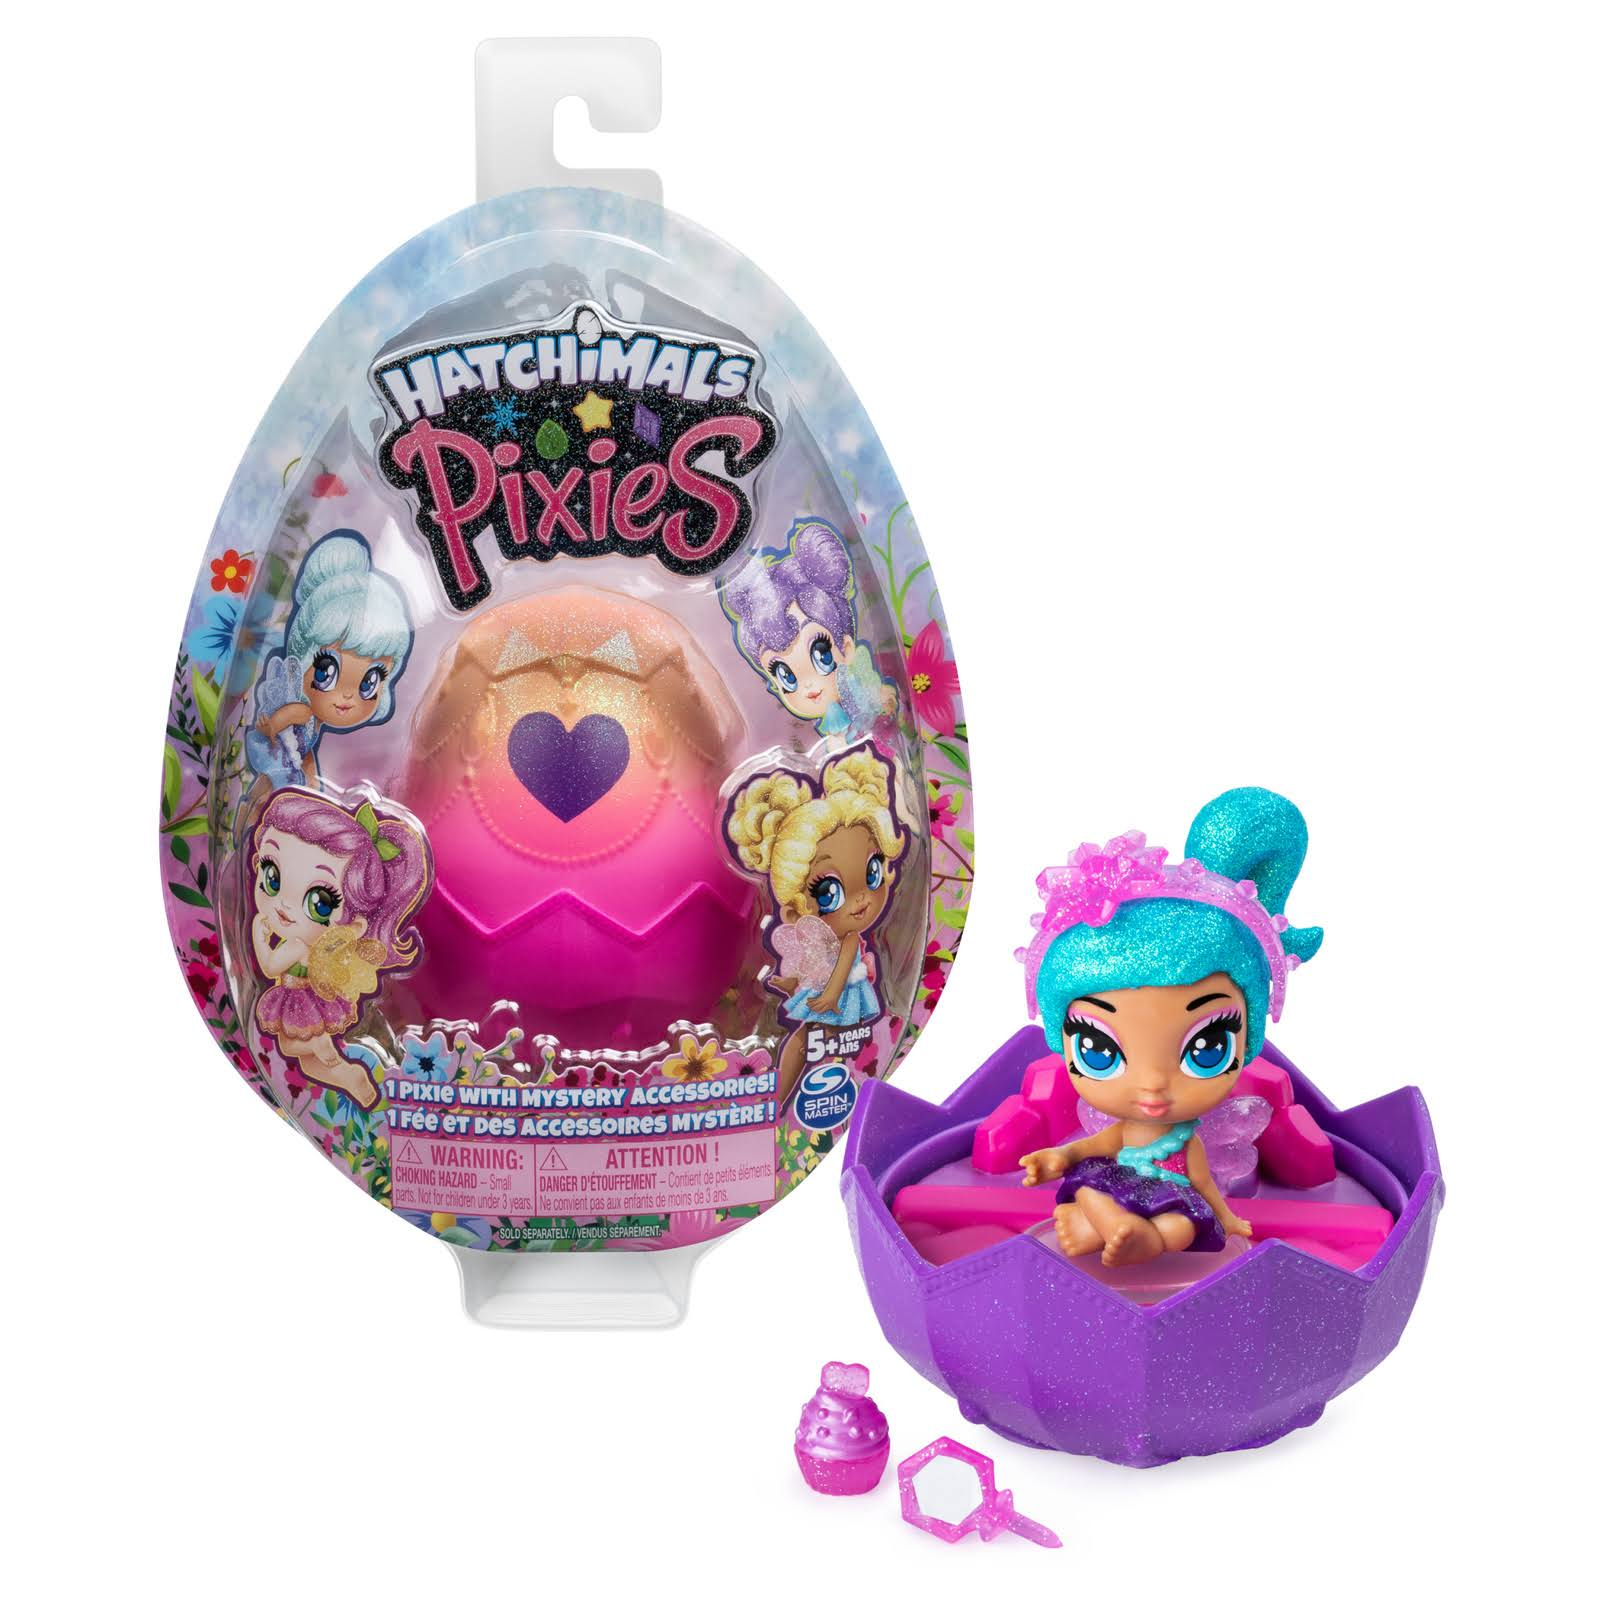 Hatchimals Pixies Blind Mystery Egg